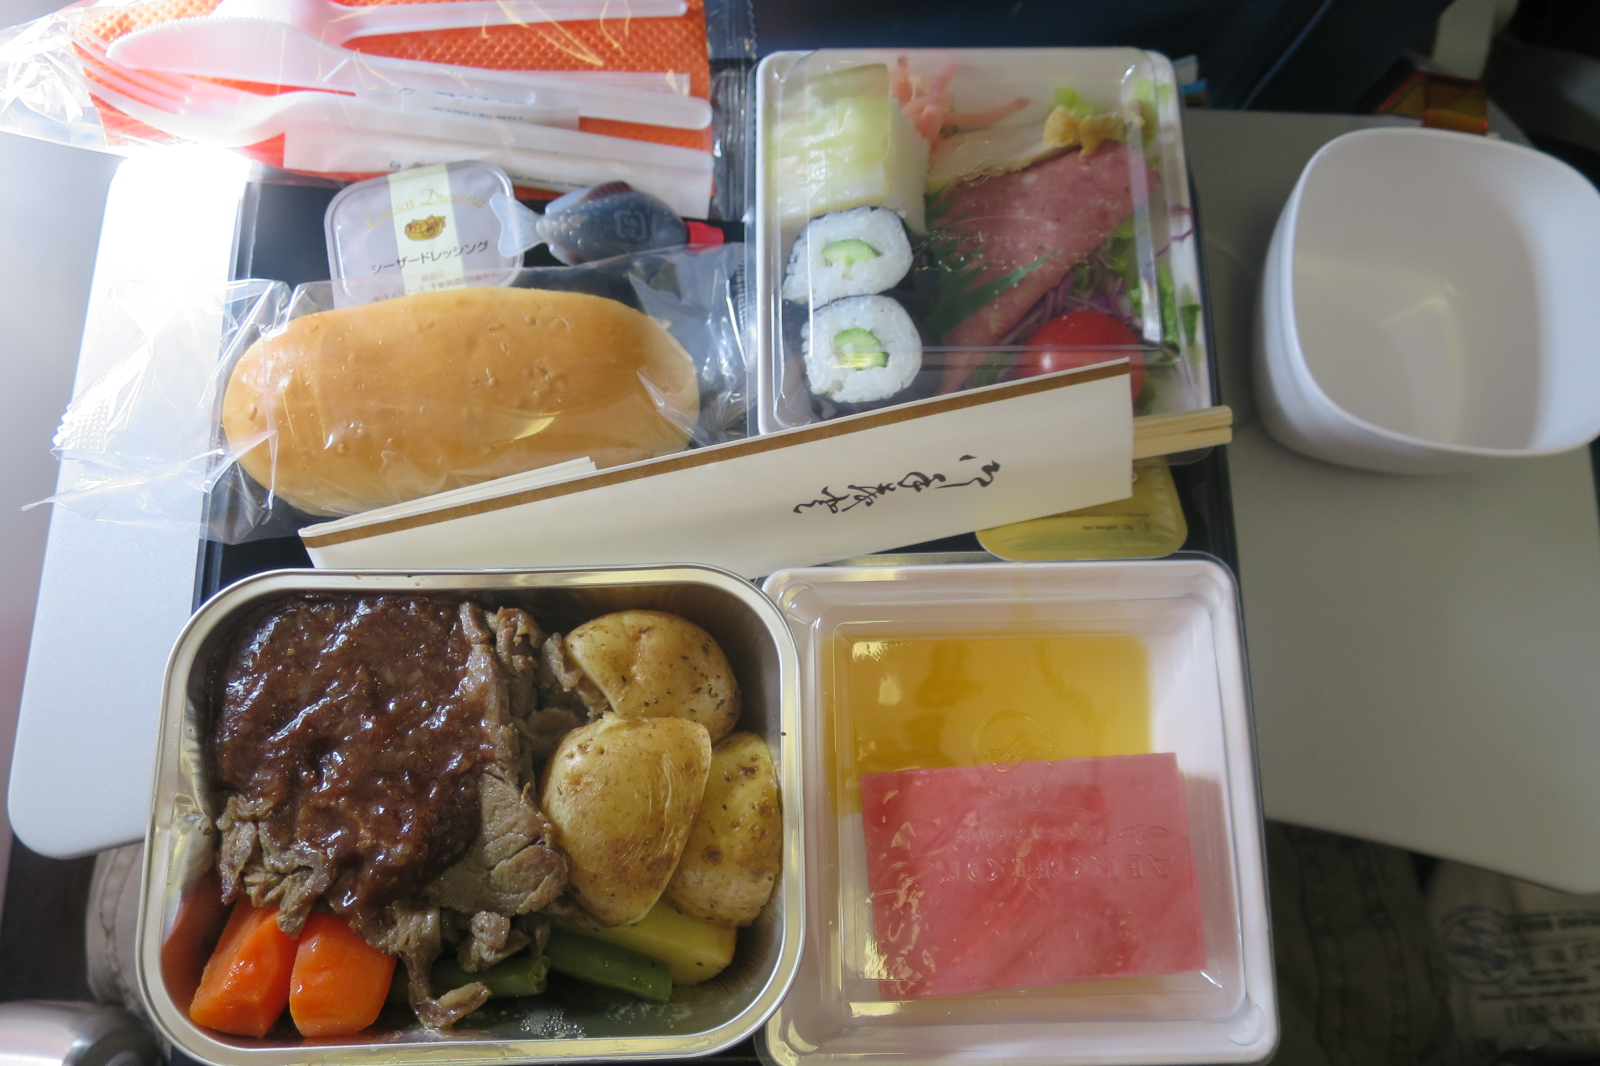 Onboard SU261 somewhere between Tokyo and Moscow (2014/08/13 09:20:00+04:00)